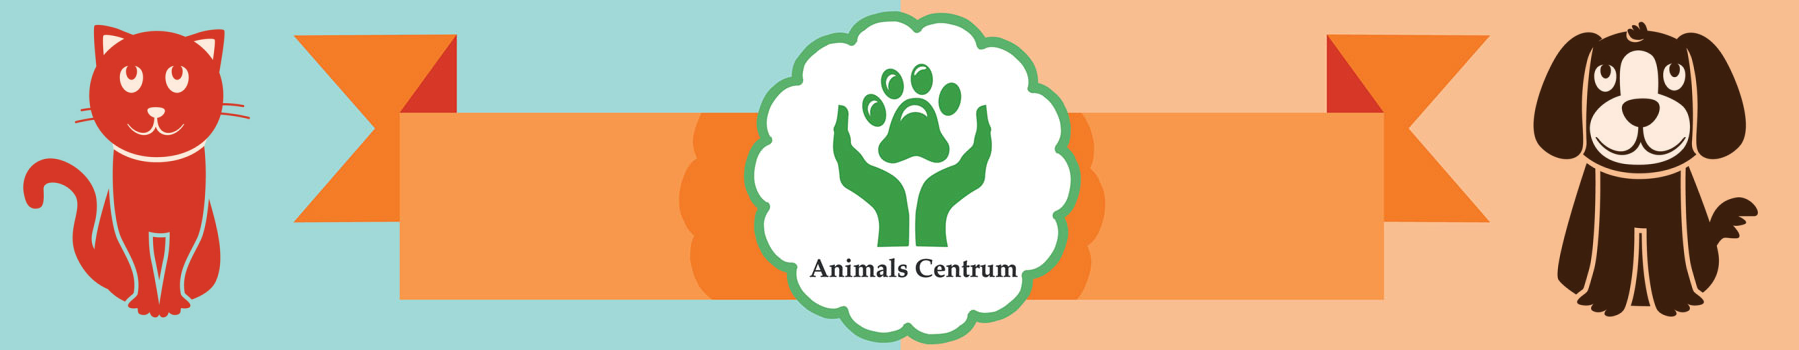 Animals Centrum Olsztyn